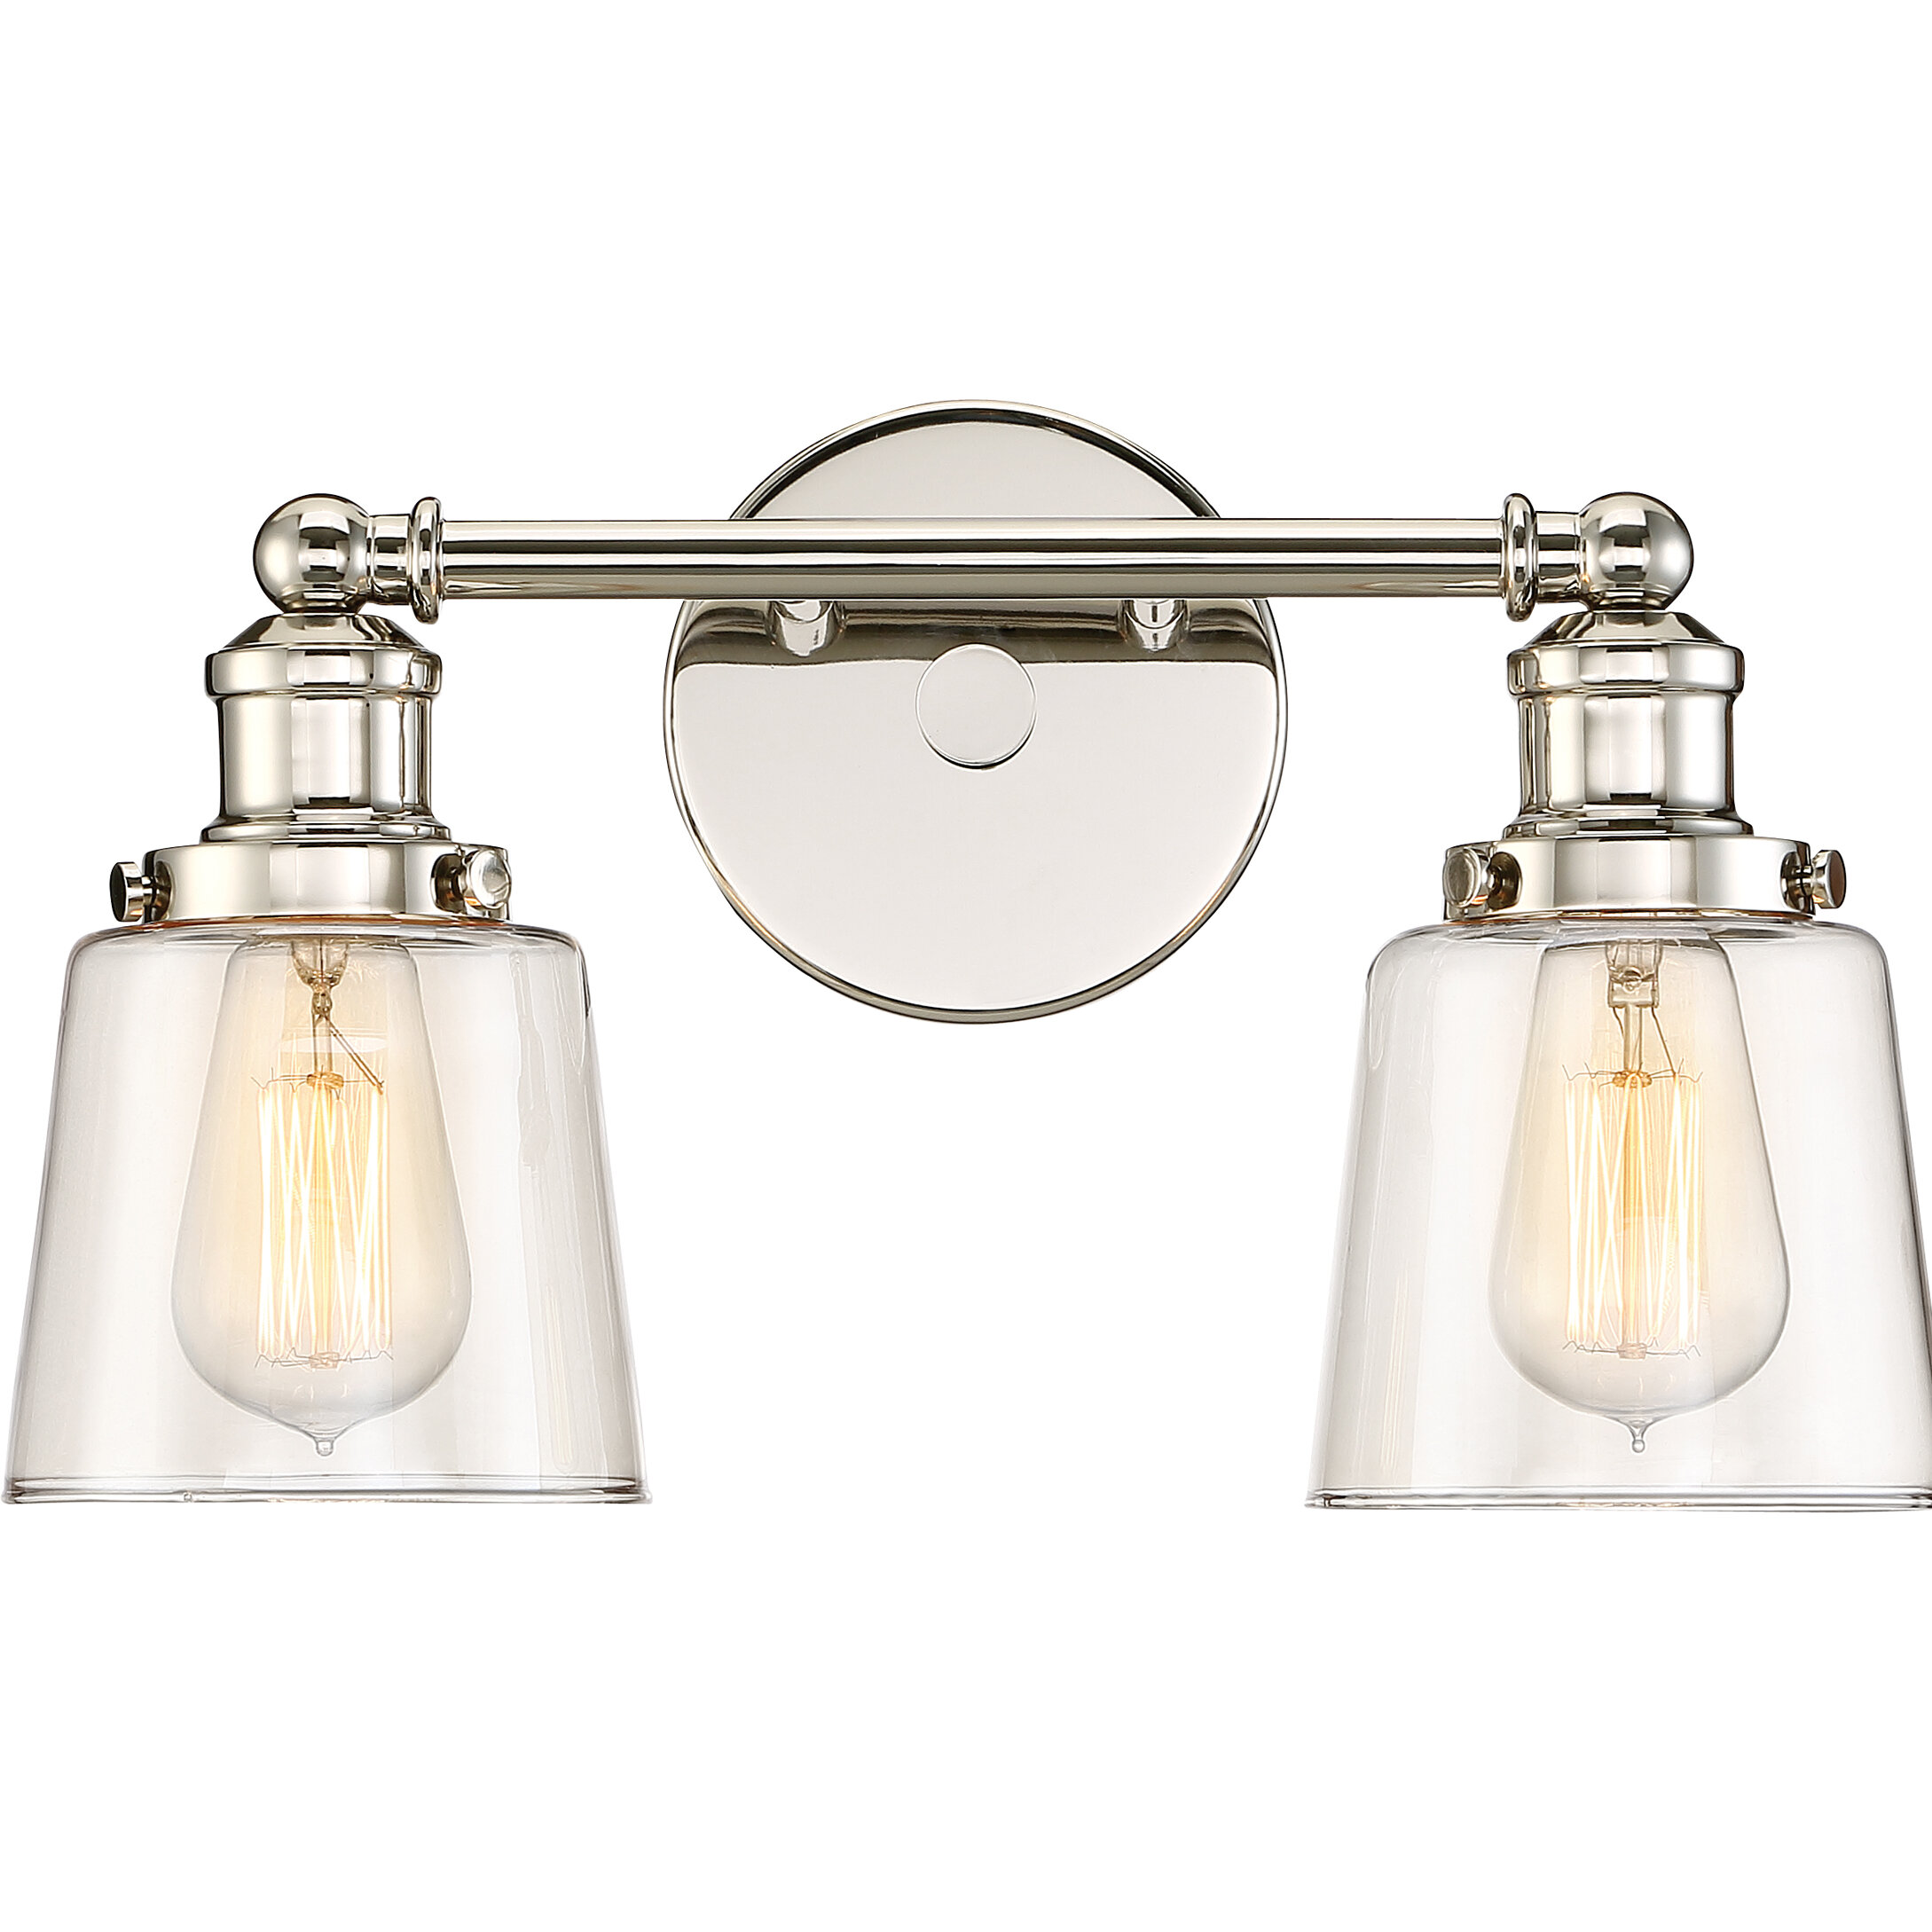 Beachcrest home woodburn 2 light vanity light reviews wayfair